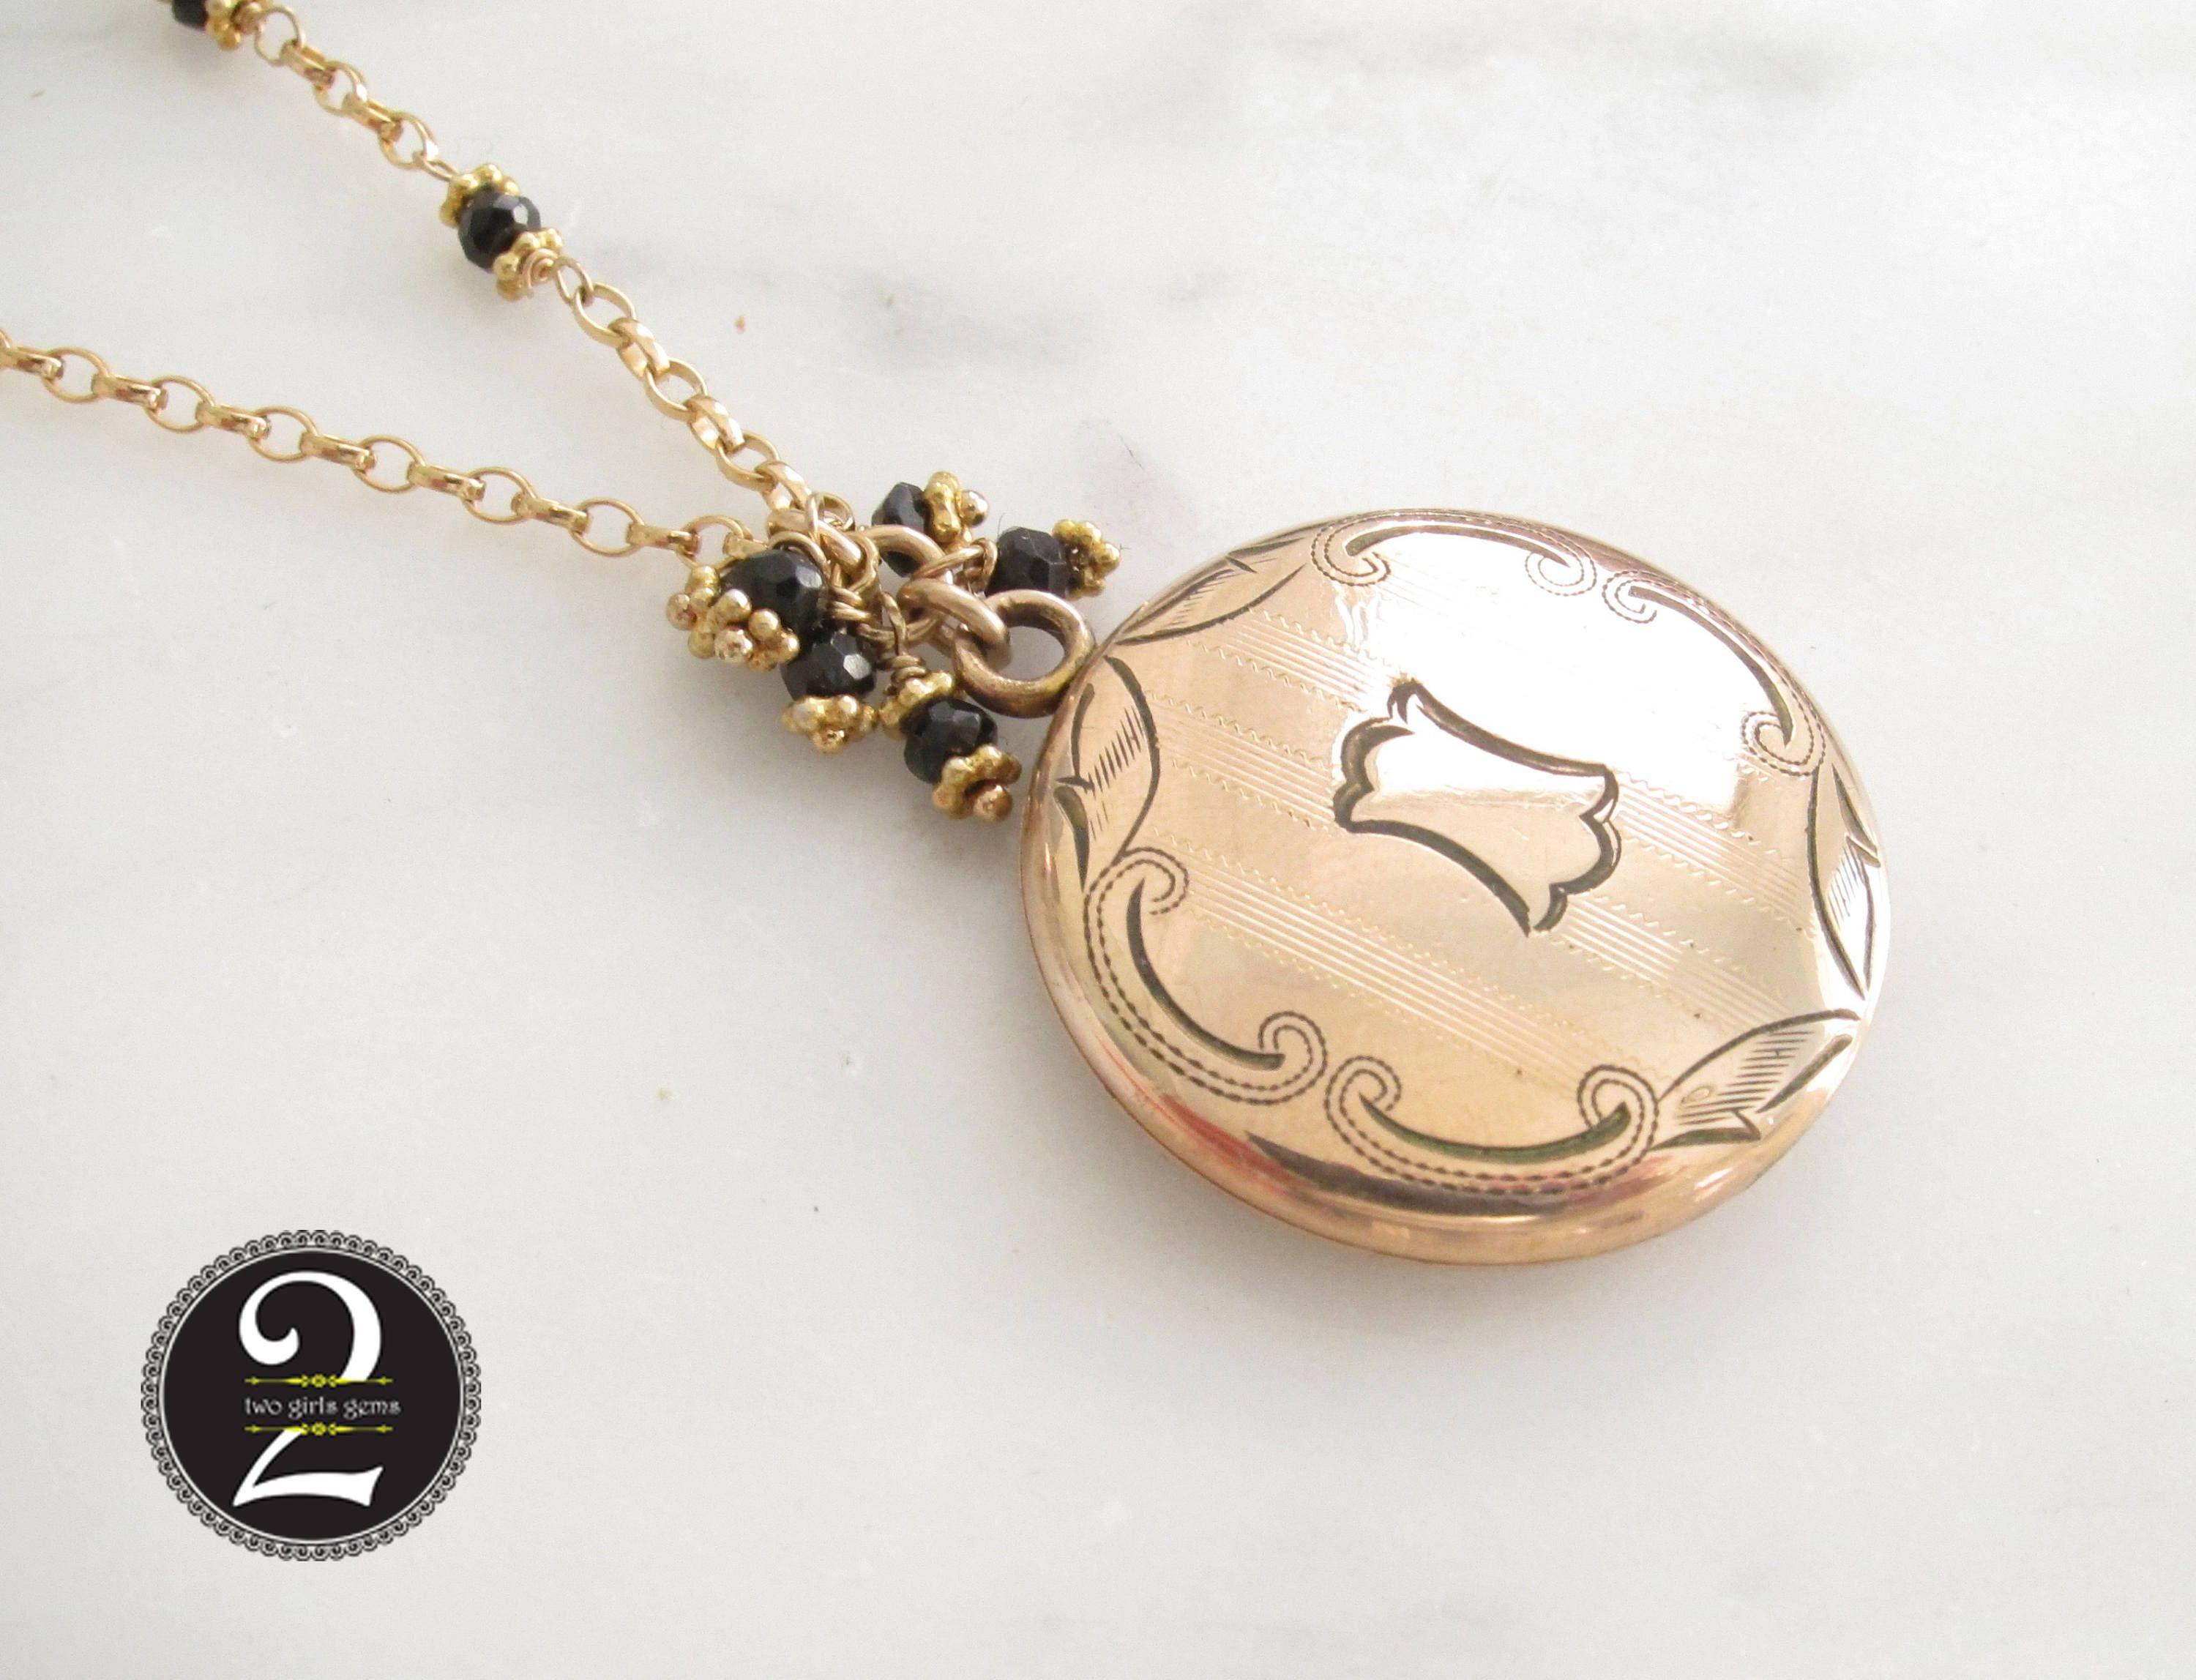 meenaz chain valentine locket for and heart pendant american women girls with diamond jewmeenaz caymancode ps plated heartmeenaaeb gifts in gold lockets